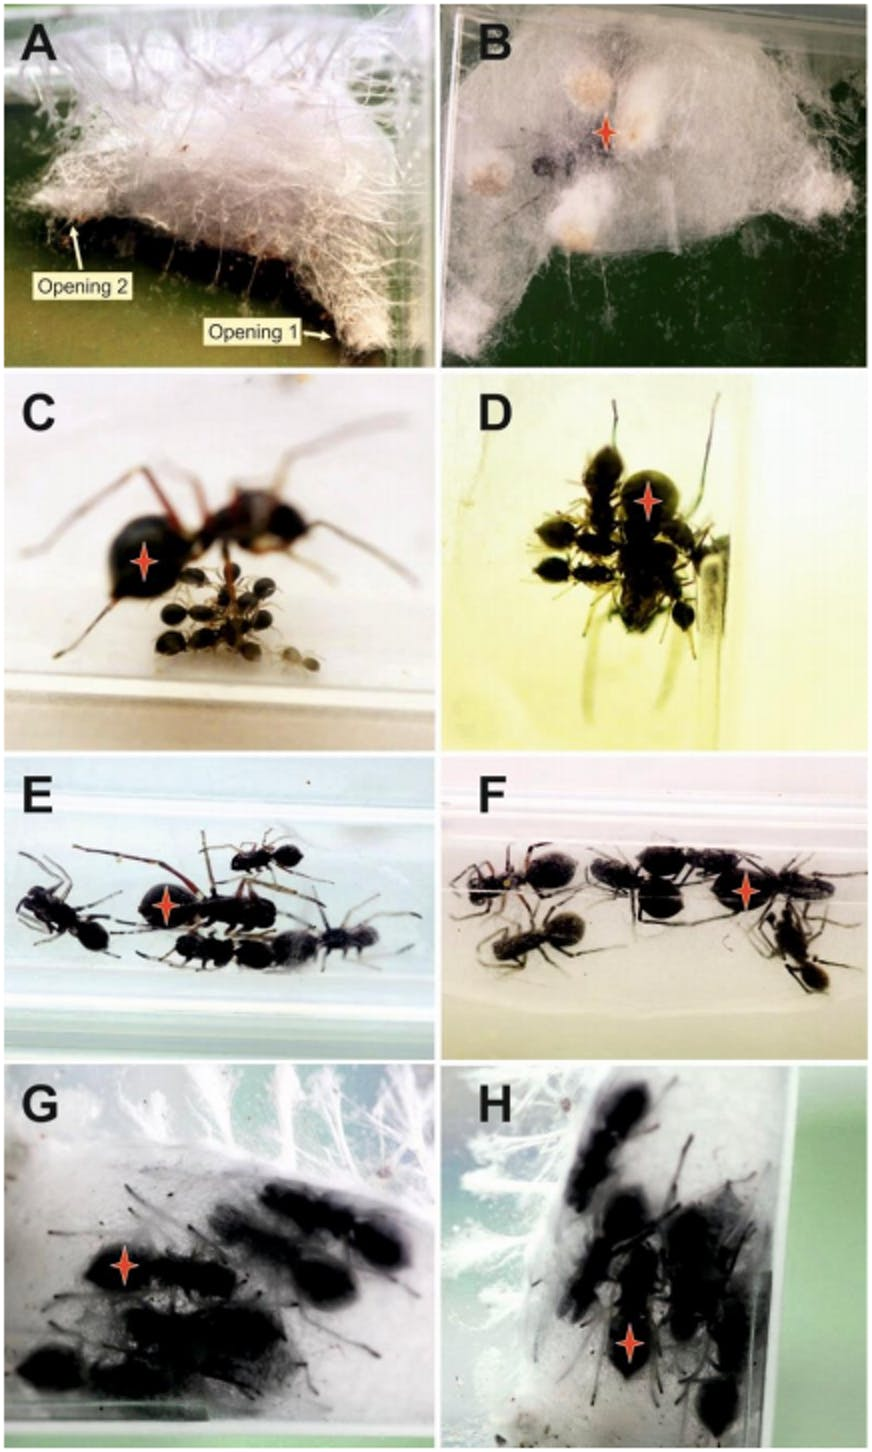 The offspring of T. magnus stick around for more than a month, drinking milk secreted by the mother (indicated by the red star). A and B show the breeding nest, C shows 1-week-old juveniles sucking milk droplets, D shows 3-week-old juveniles sucking milk from the mother, E shows 5-week-old juveniles and the mother, F shows 7-week7old juveniles (subadults) and the mother, G shows 9-week-old offspring (sexually mature) and the mother, and H shows 11-week-old offspring and the mother.